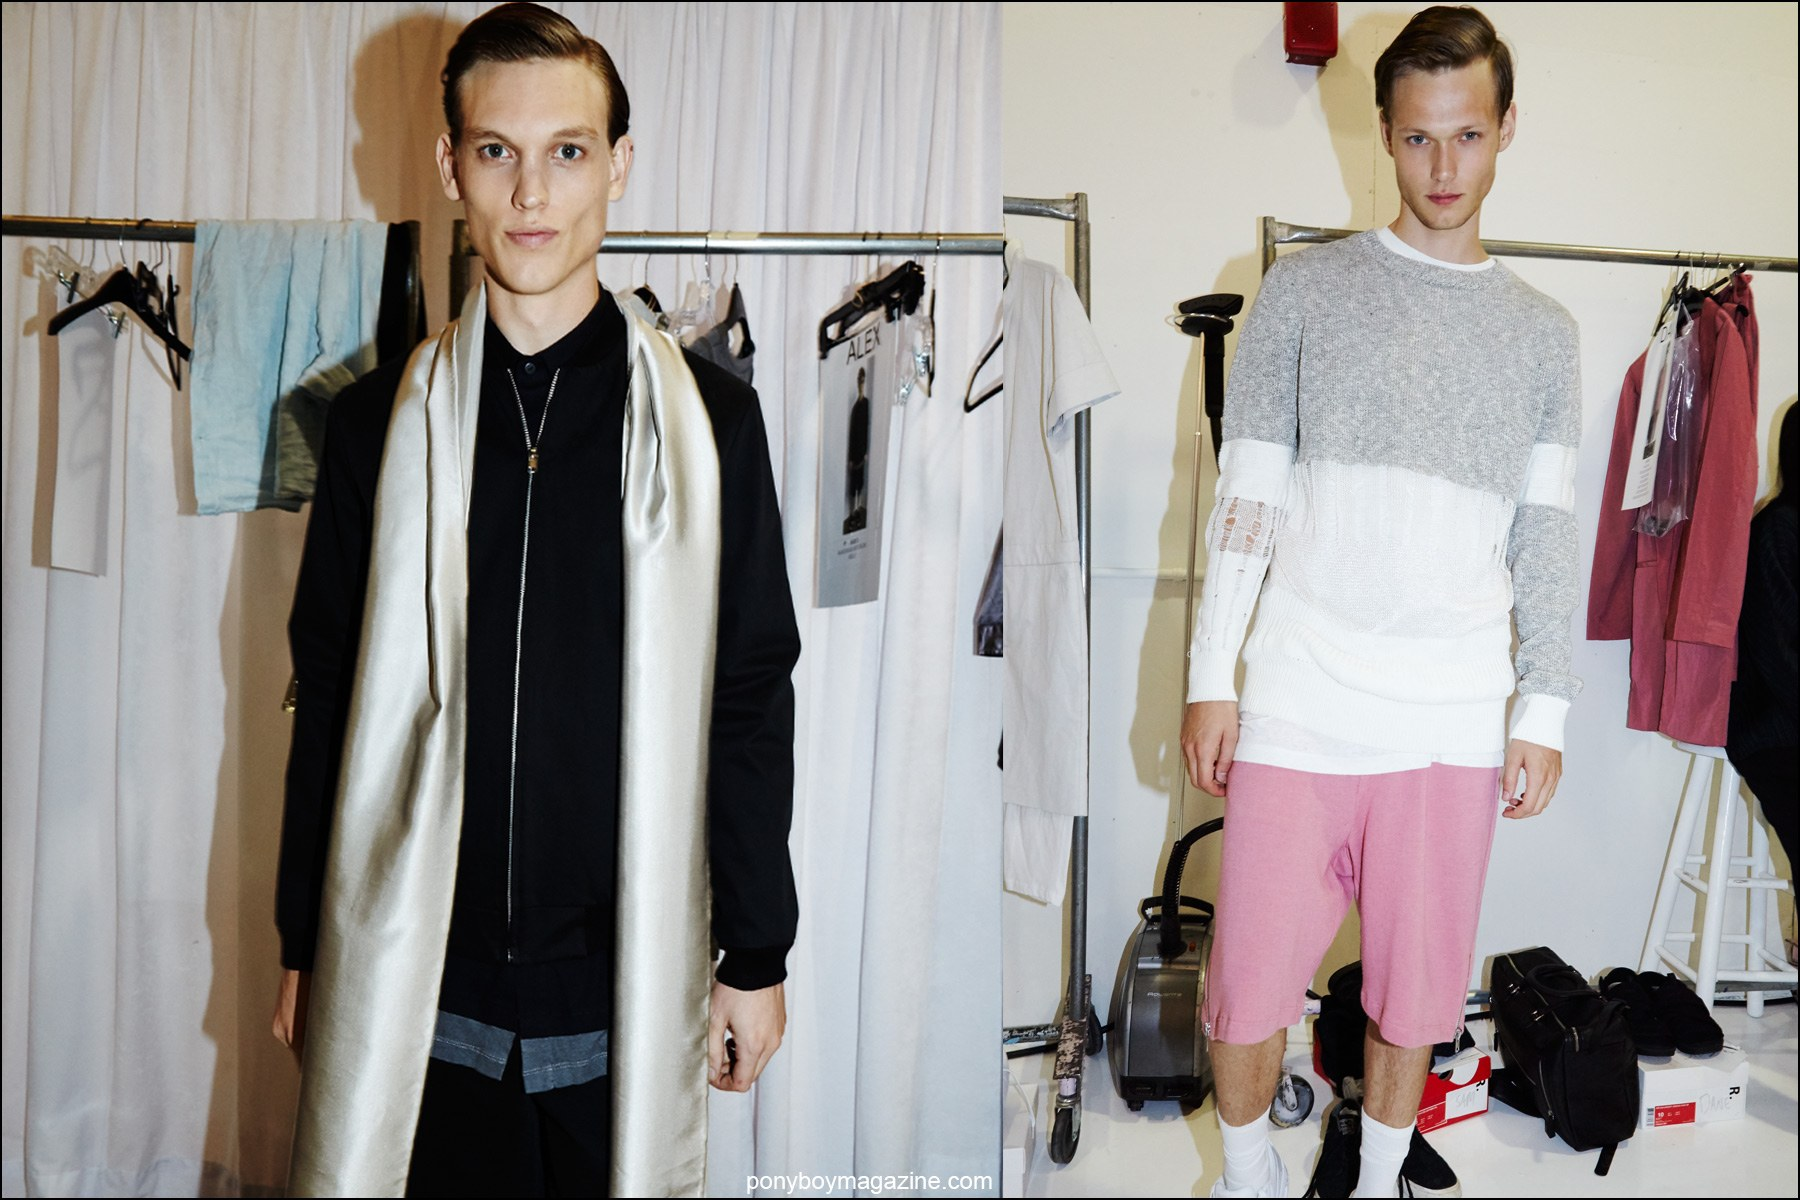 Models Alex Treutel and Sam Visser snapped backstage at Rochambeau menswear show, for Spring/Summer 2016. Photographs by Alexander Thompson for Ponyboy magazine NY.